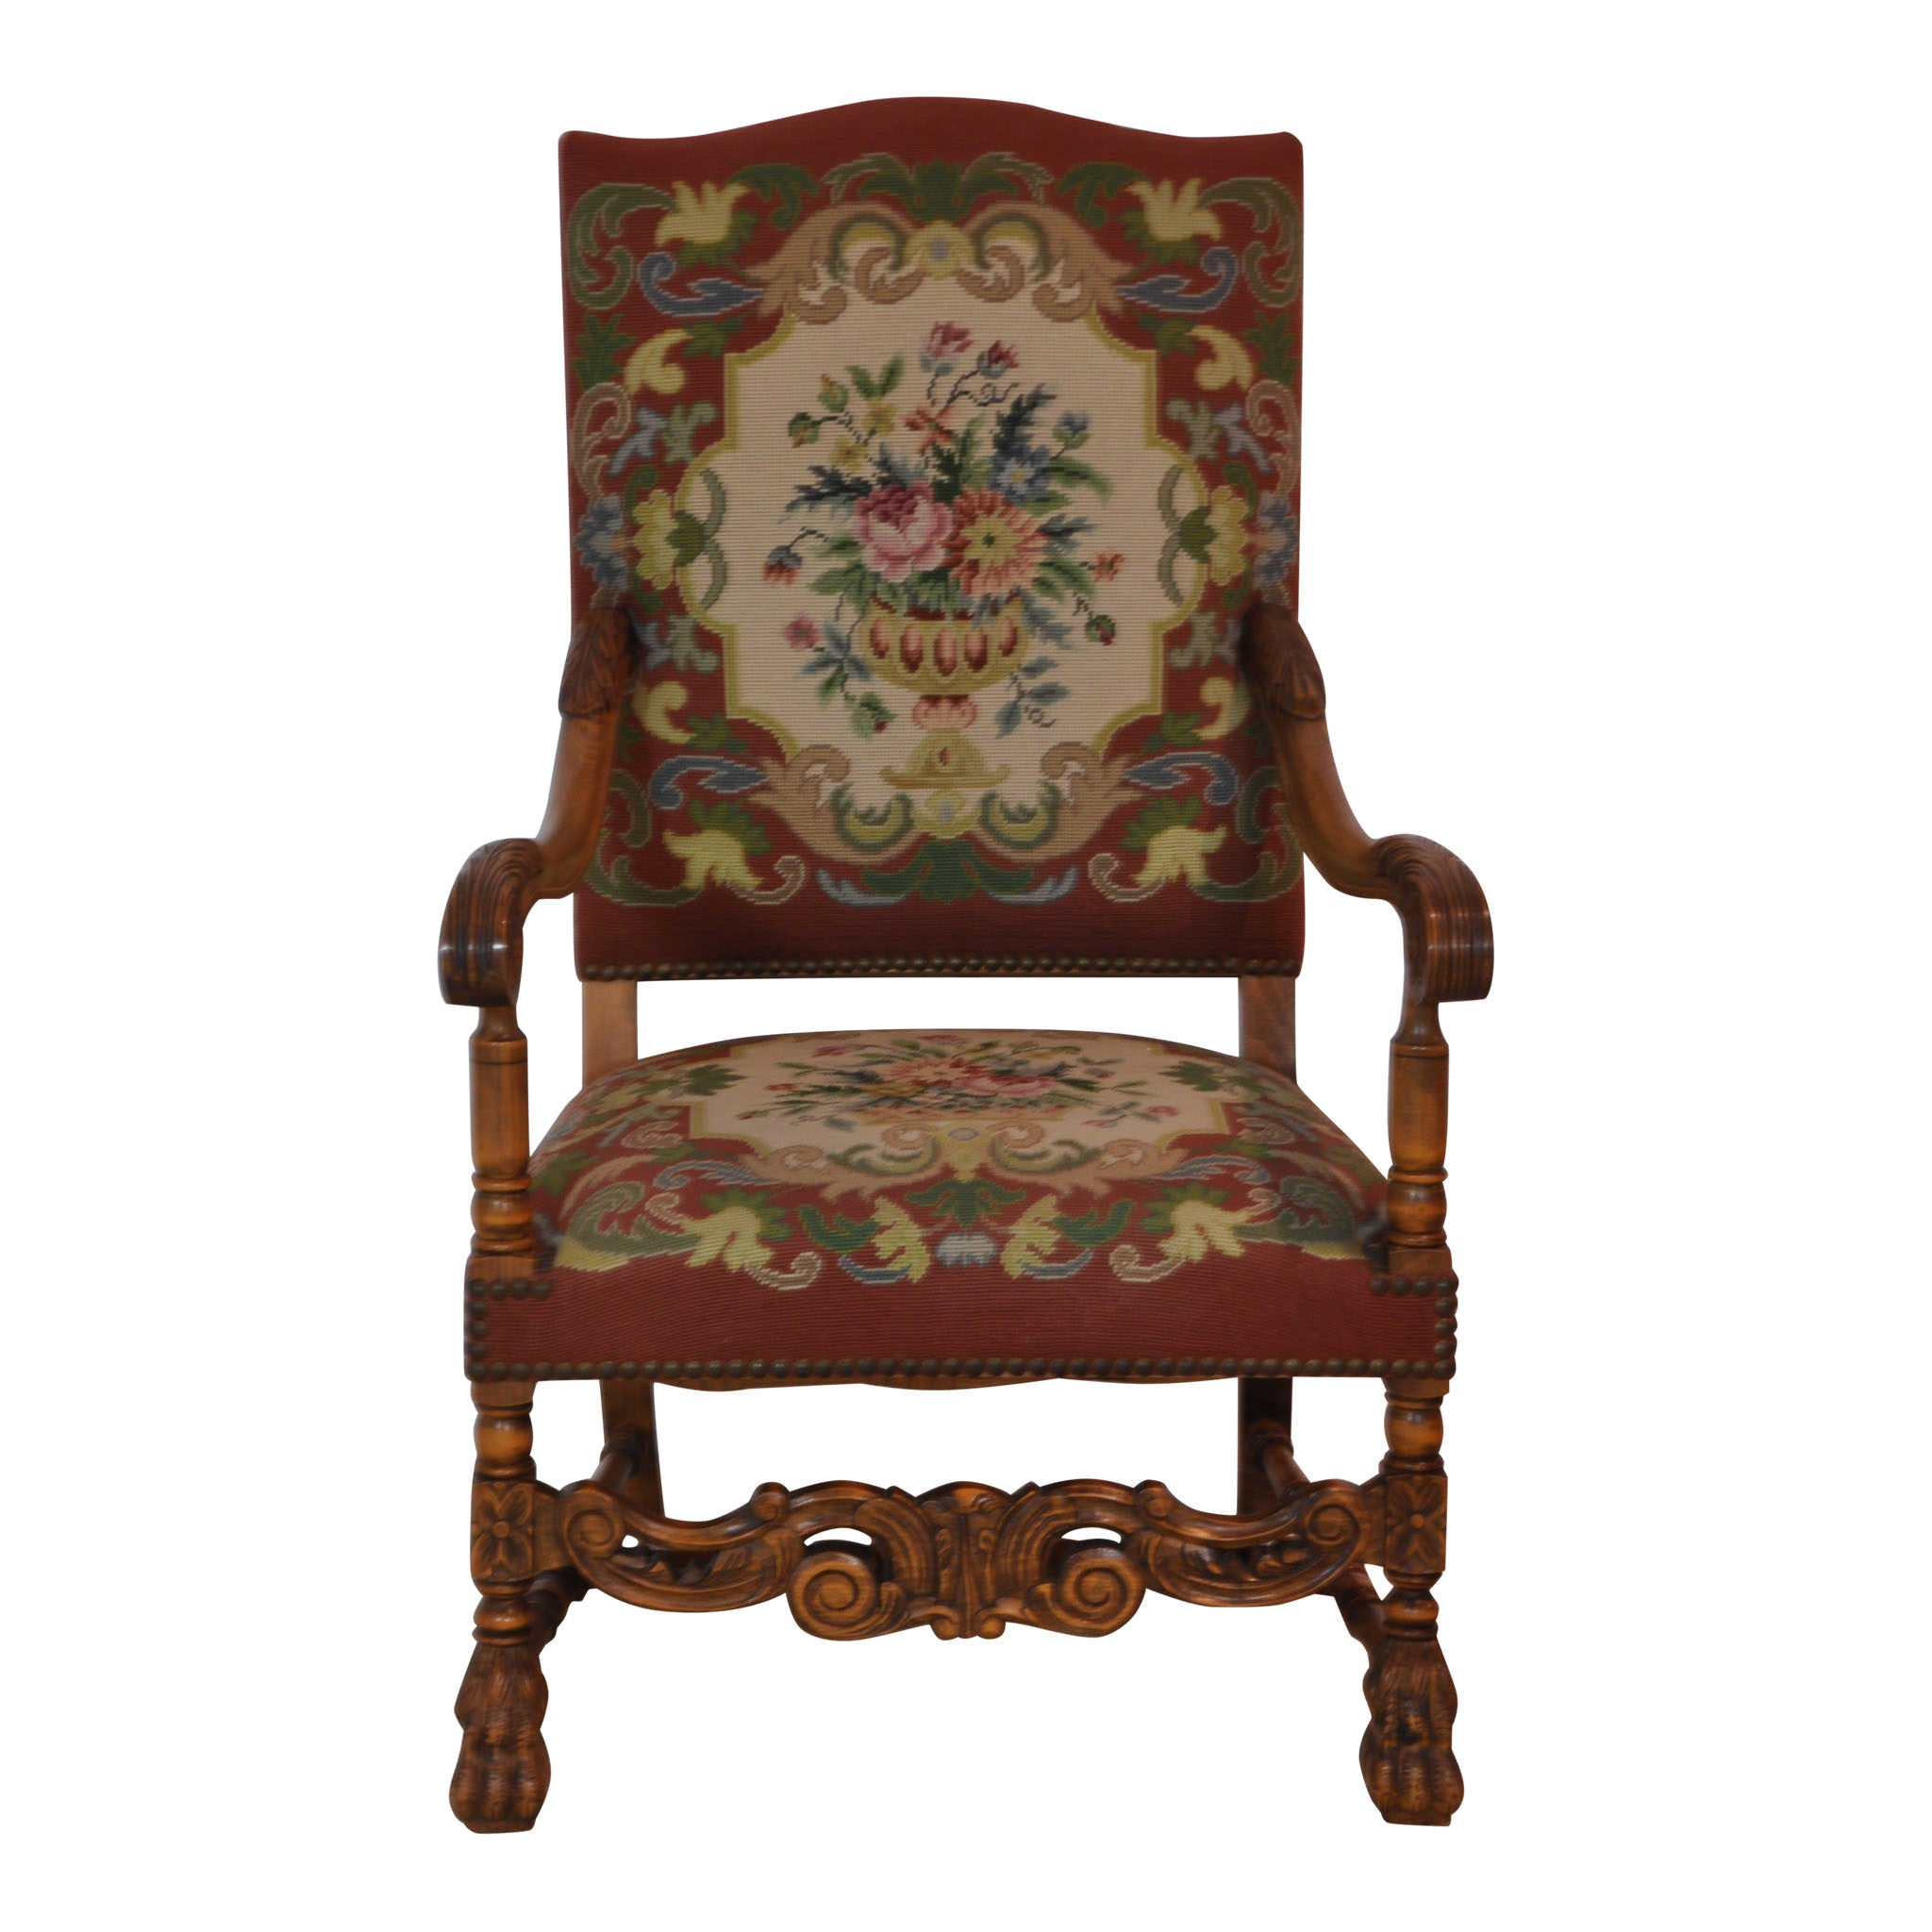 Delightful French Needlepoint Chair